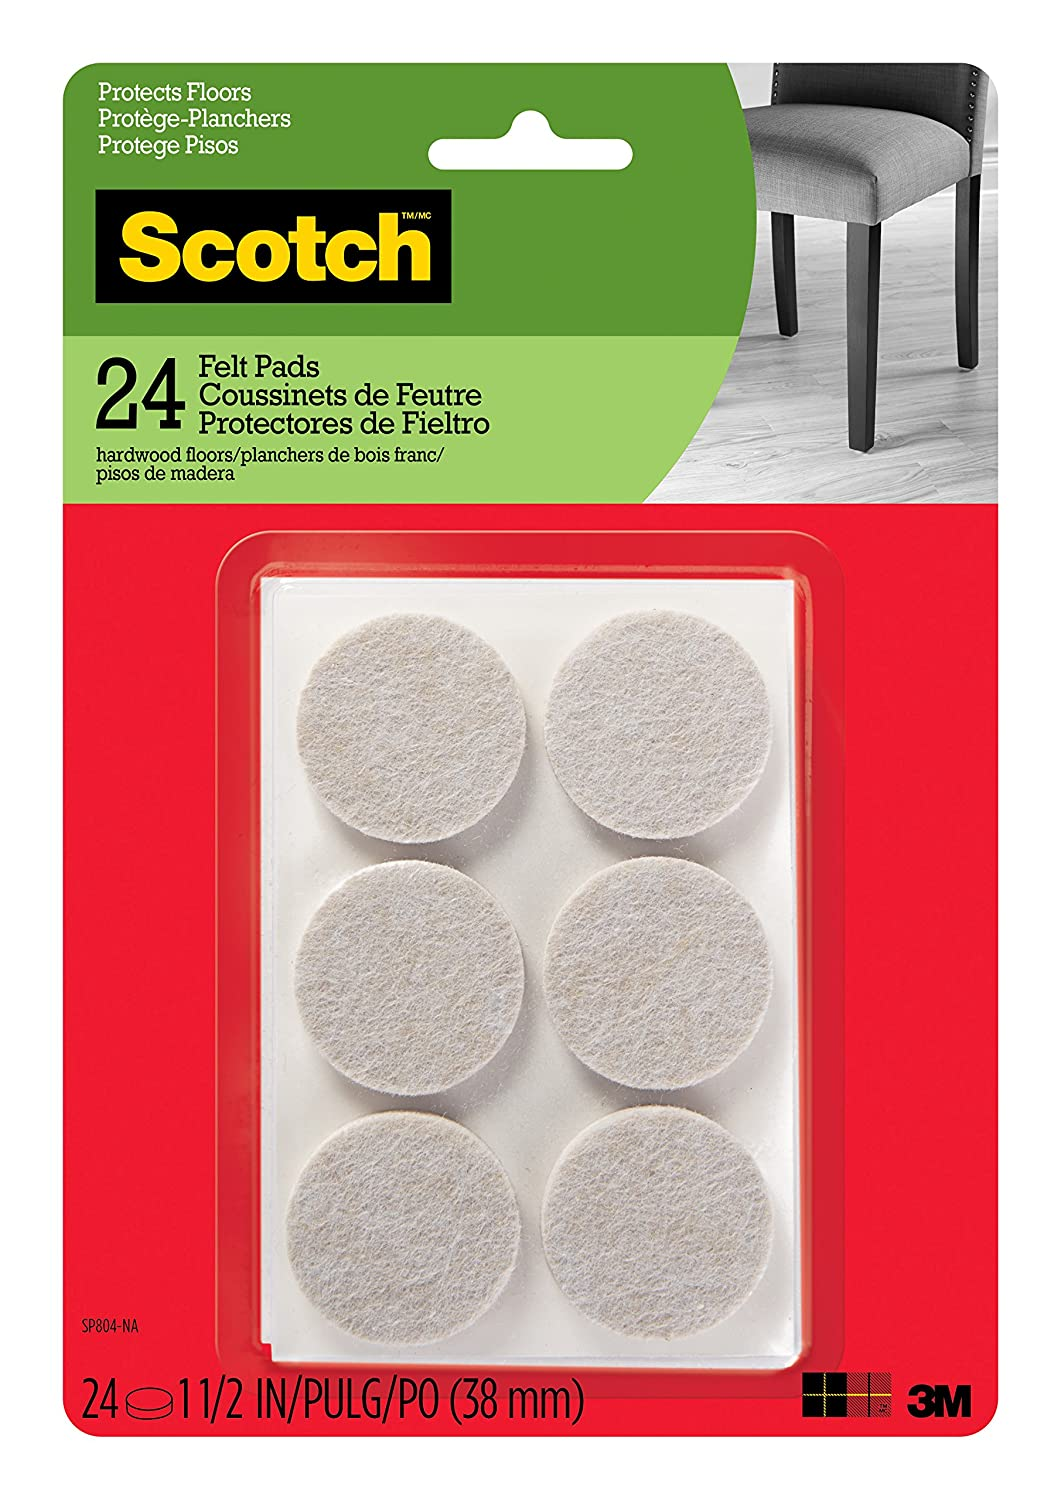 Scotch Brand SP804-NA Scotch Felt Pads Round, 1.5 in. Diameter, Beige, 24/Pack,